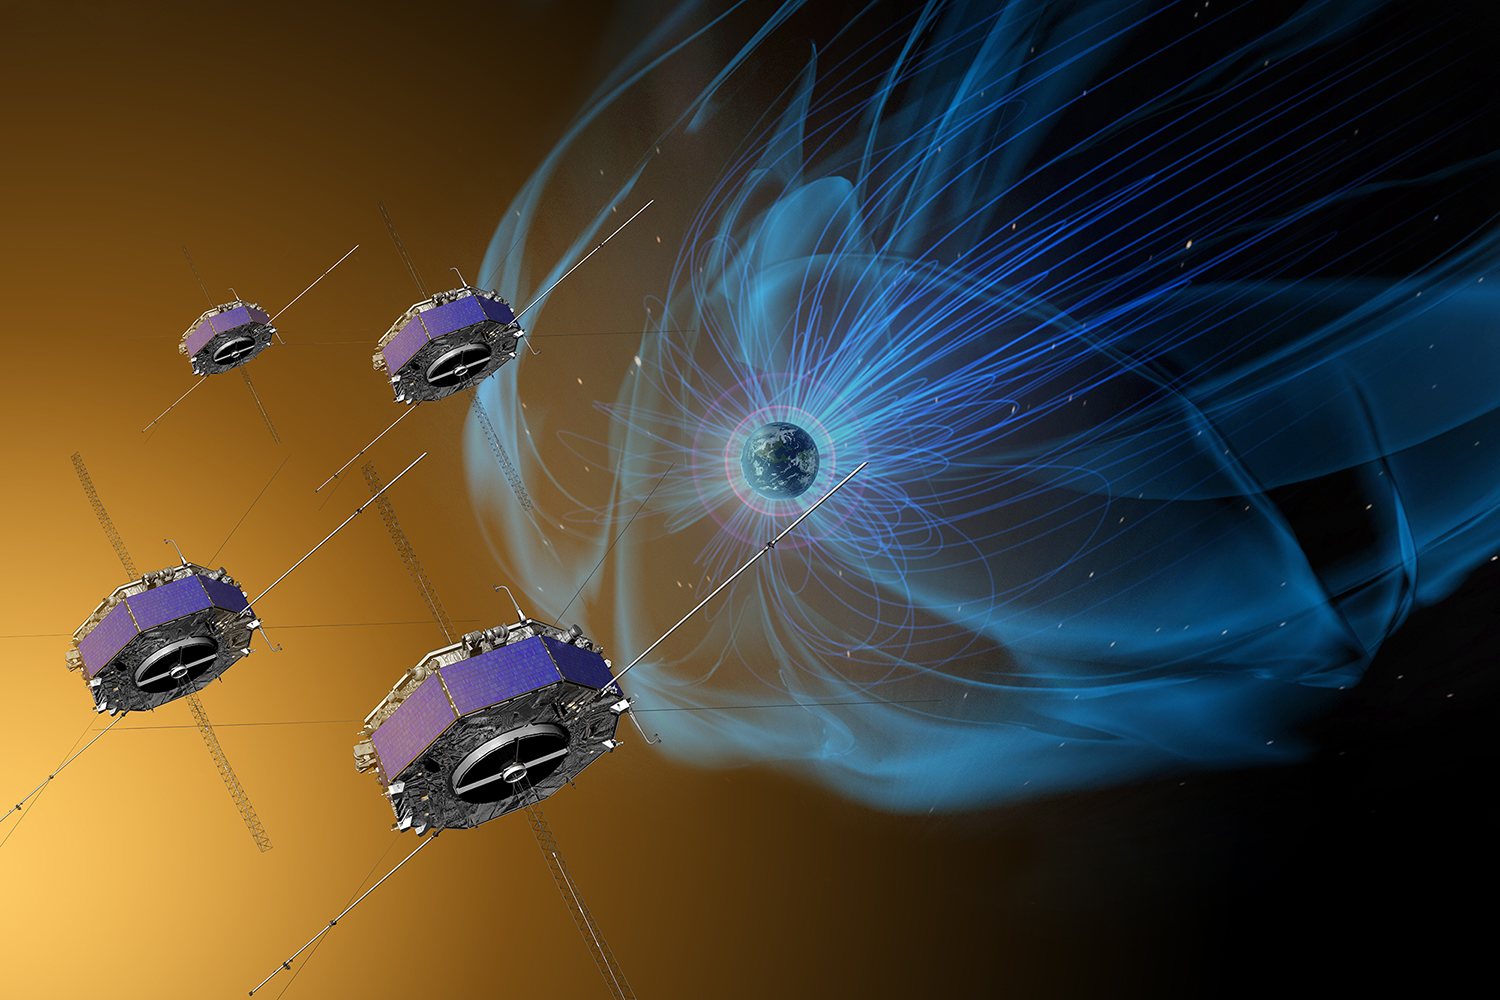 $1 billion Magnetospheric Multiscale Mission directly ...